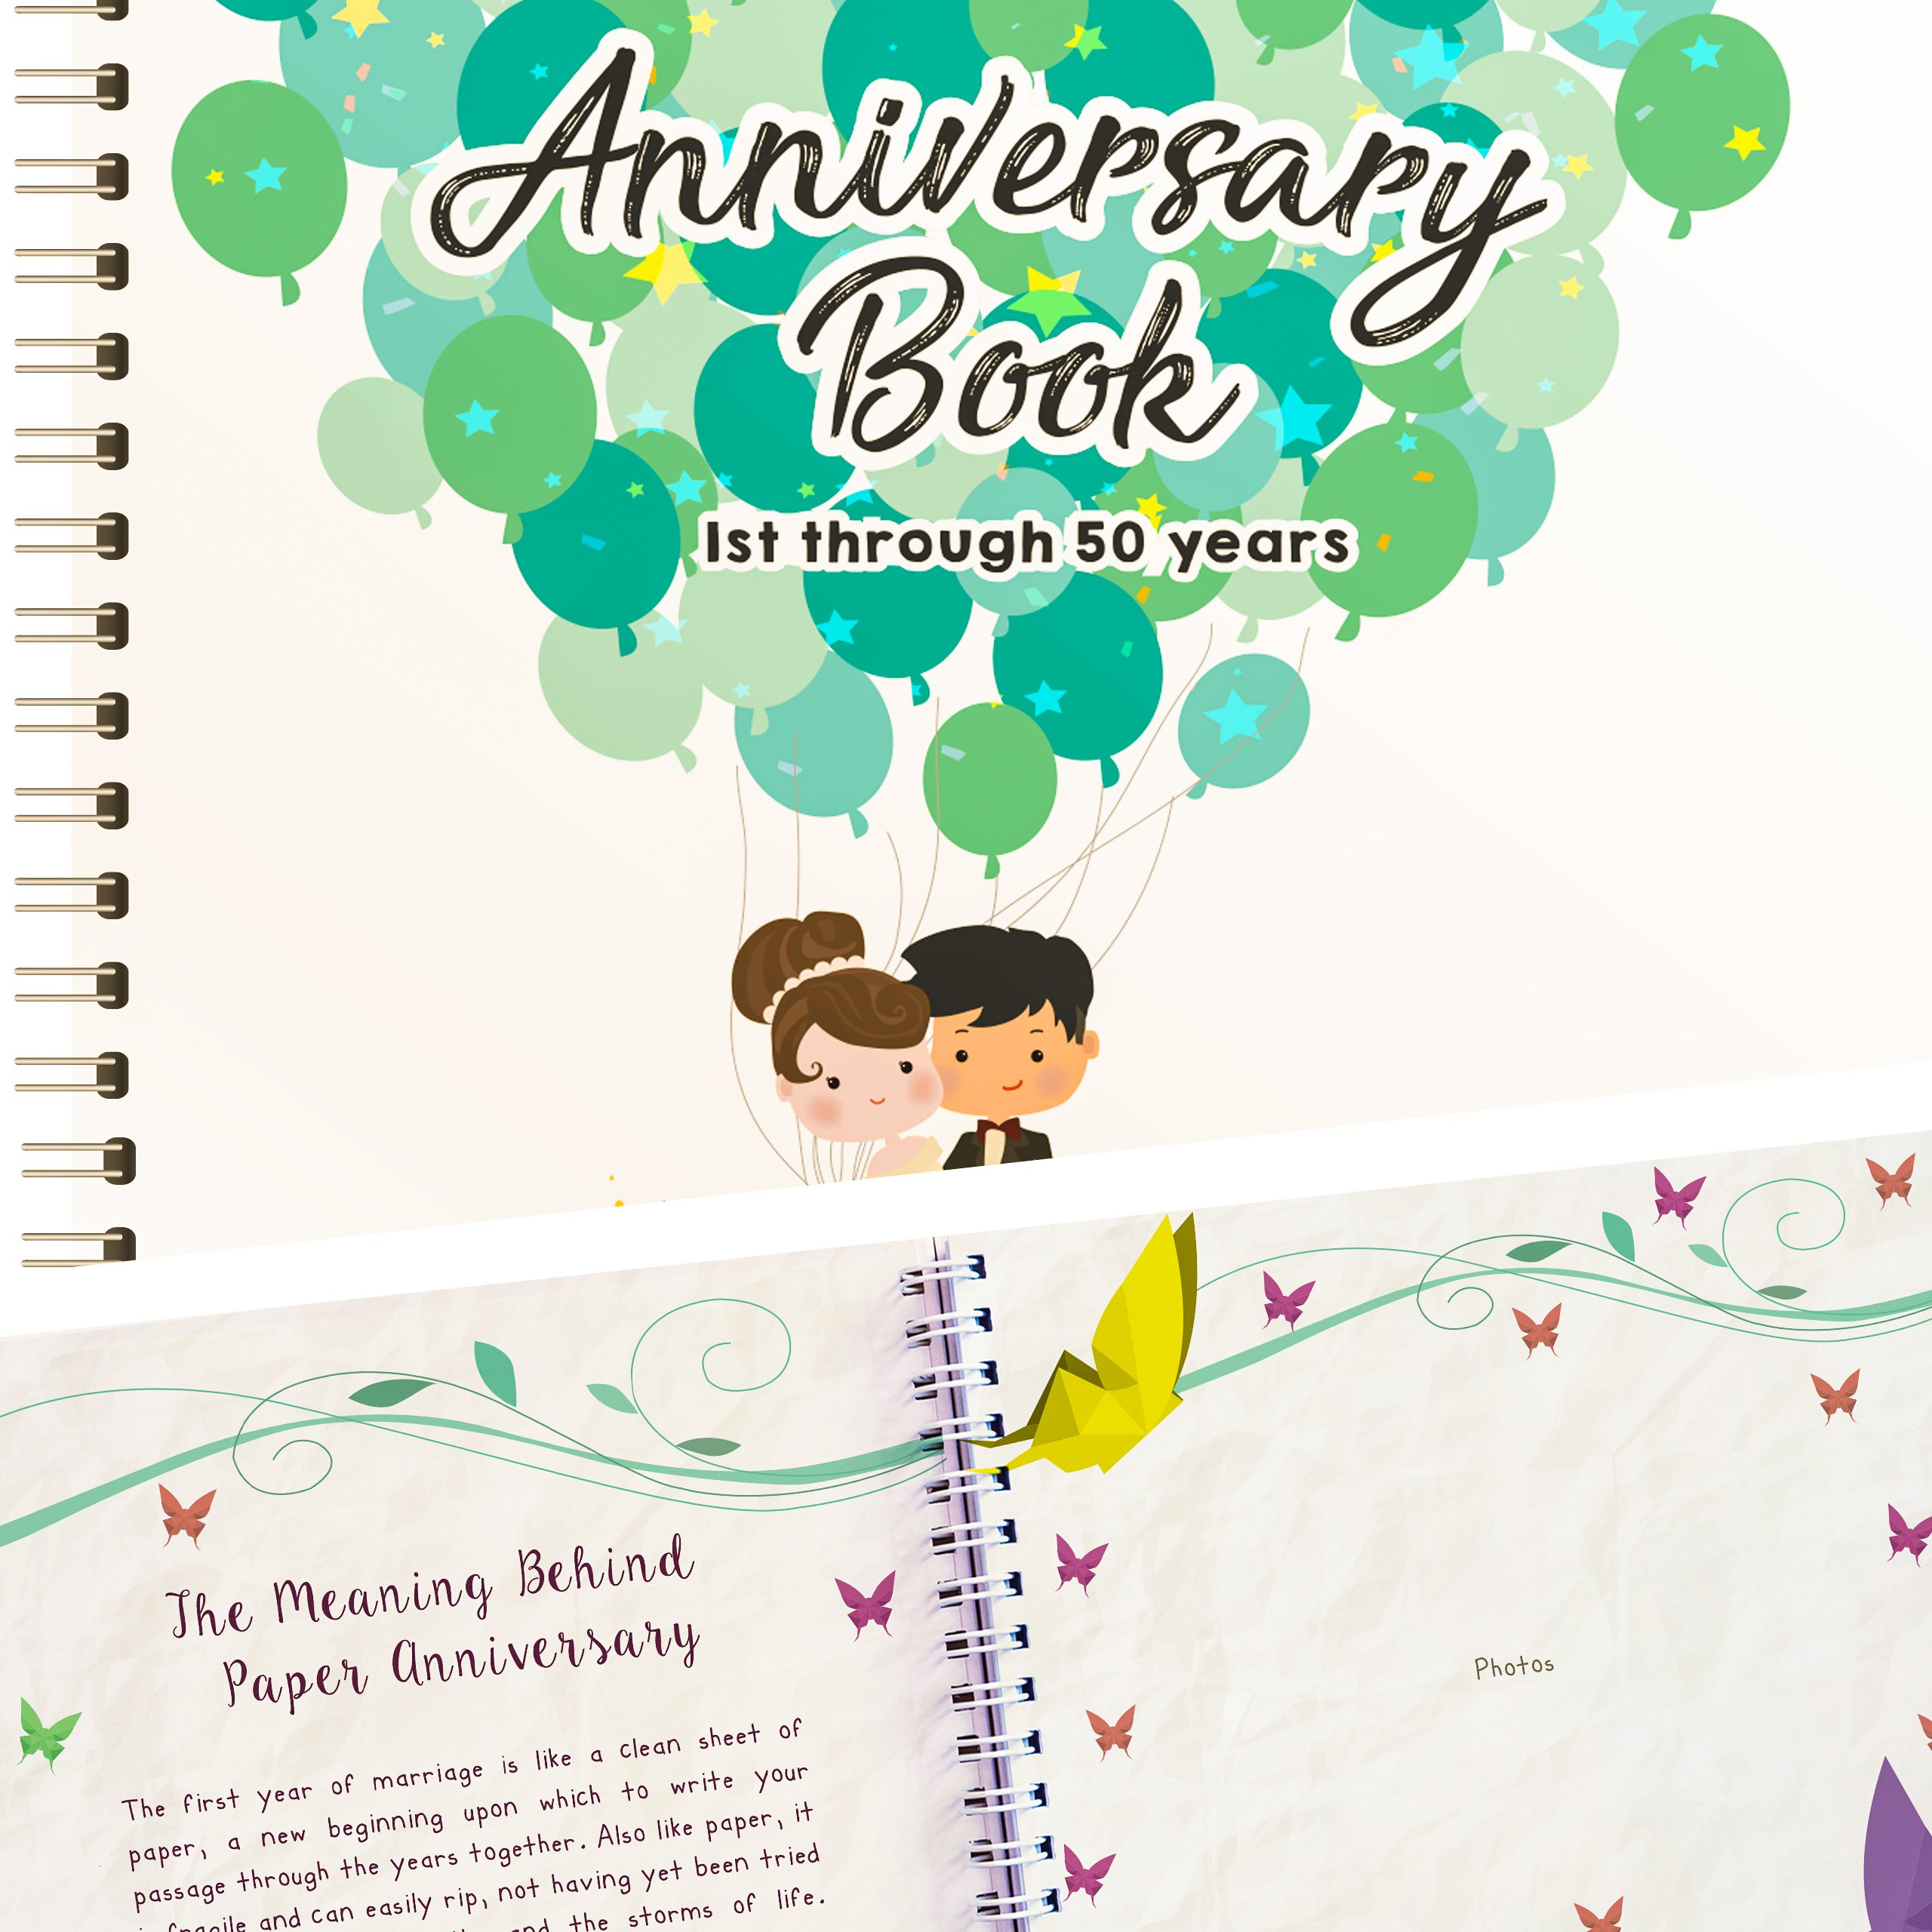 Wedding Anniversary Book - A Hardcover Journal To Document Wedding Anniversaries From The 1st To the 50th Year - Unique Couple Gifts For Him & Her - Personalized Marriage Presents For Husband & Wife. by Unconditional Rosie